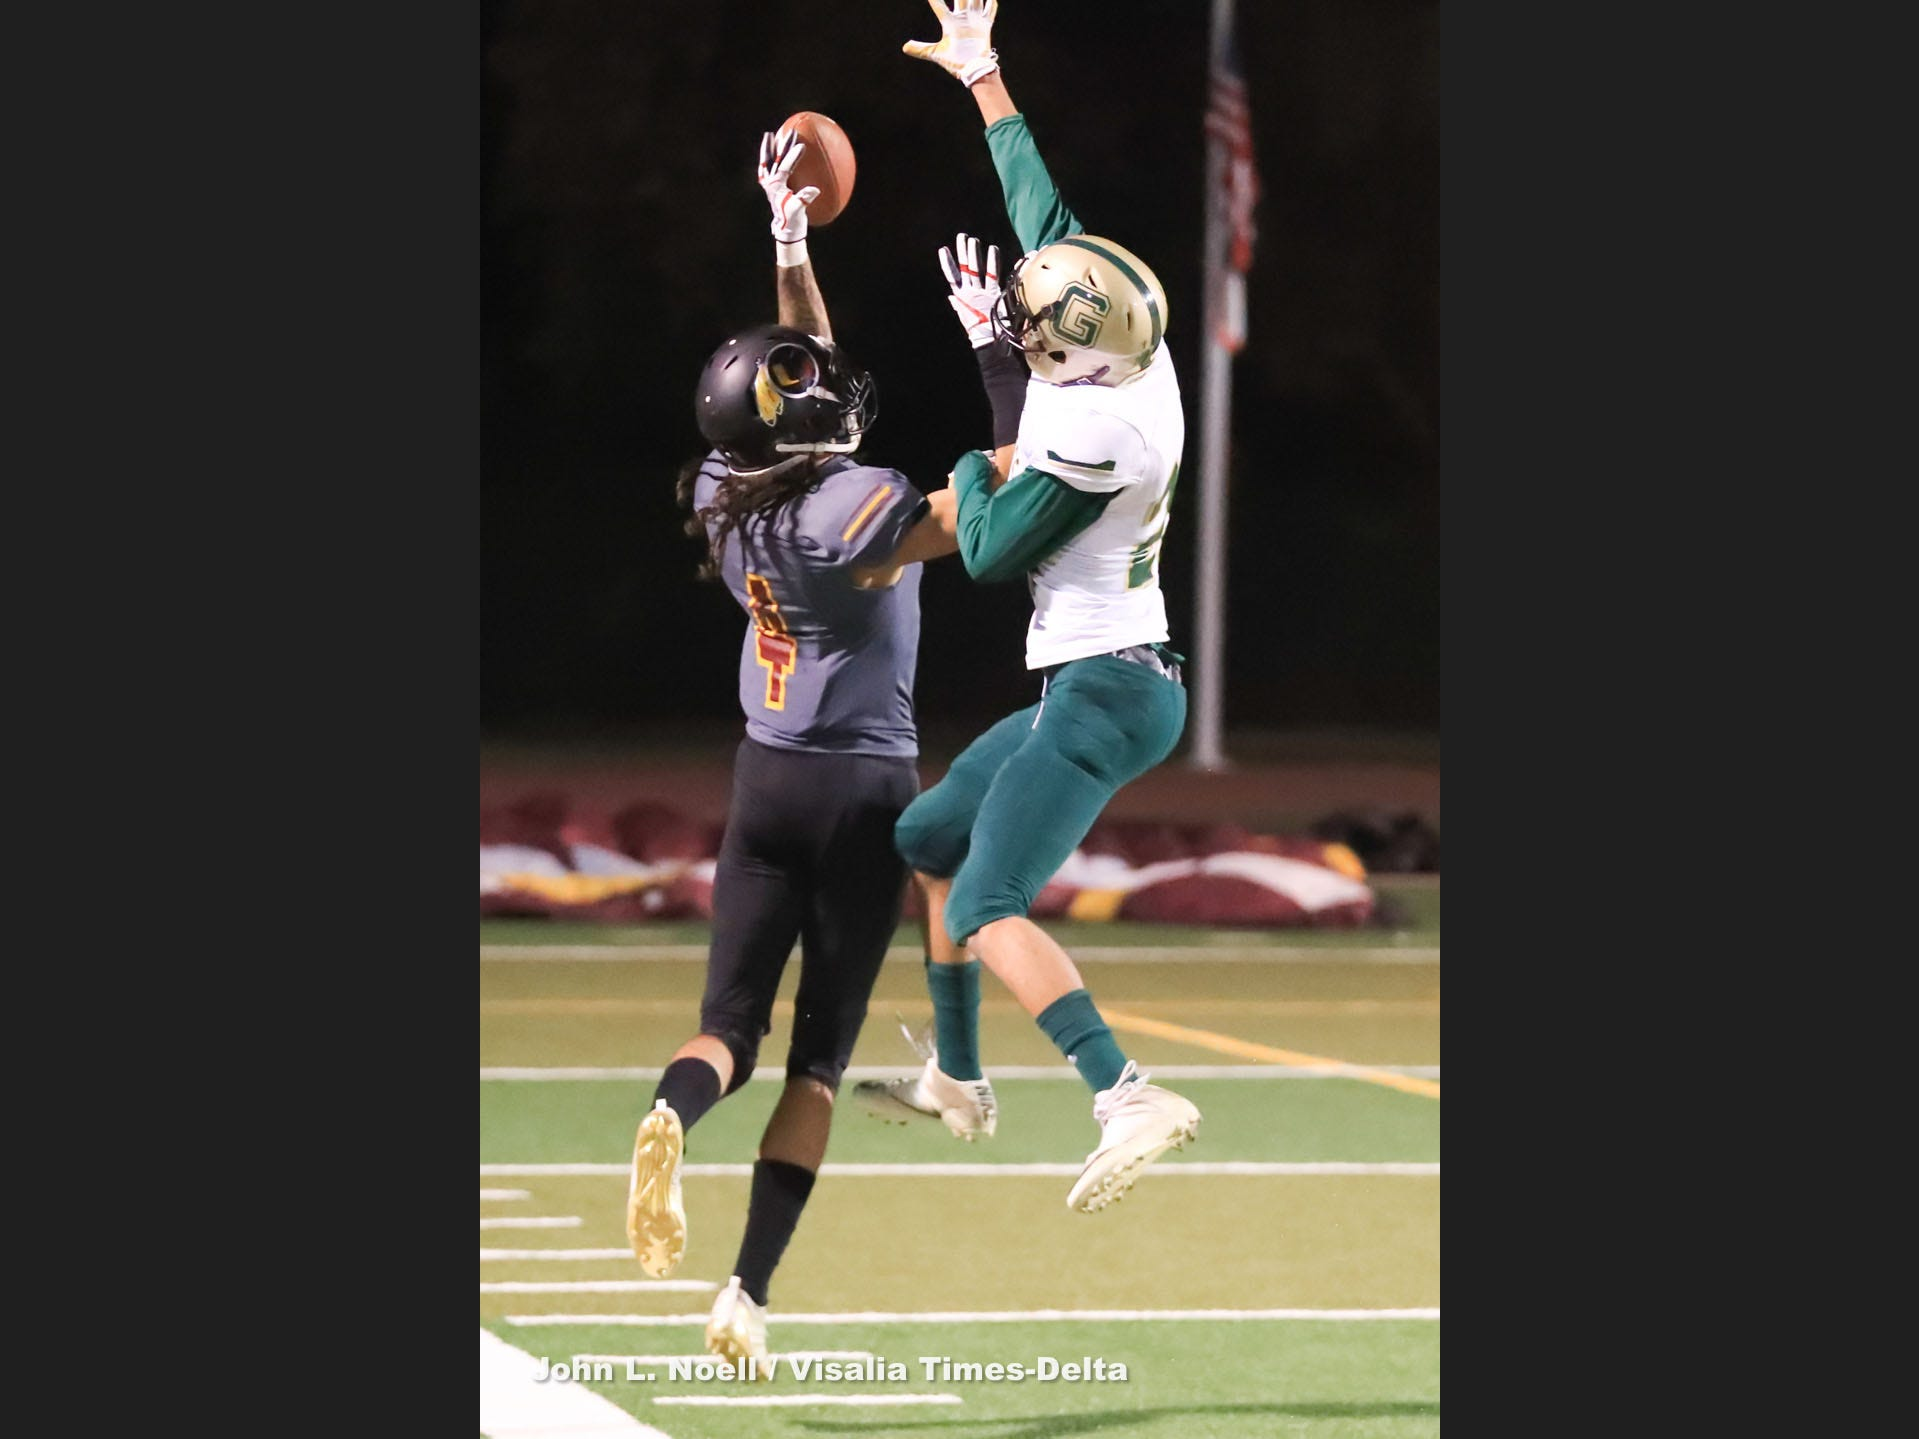 Tulare Union hosts Garces Memorial in a Central Section Division II quarterfinal high school football game at Bob Mathias Stadium on Nov 9th, 2018.